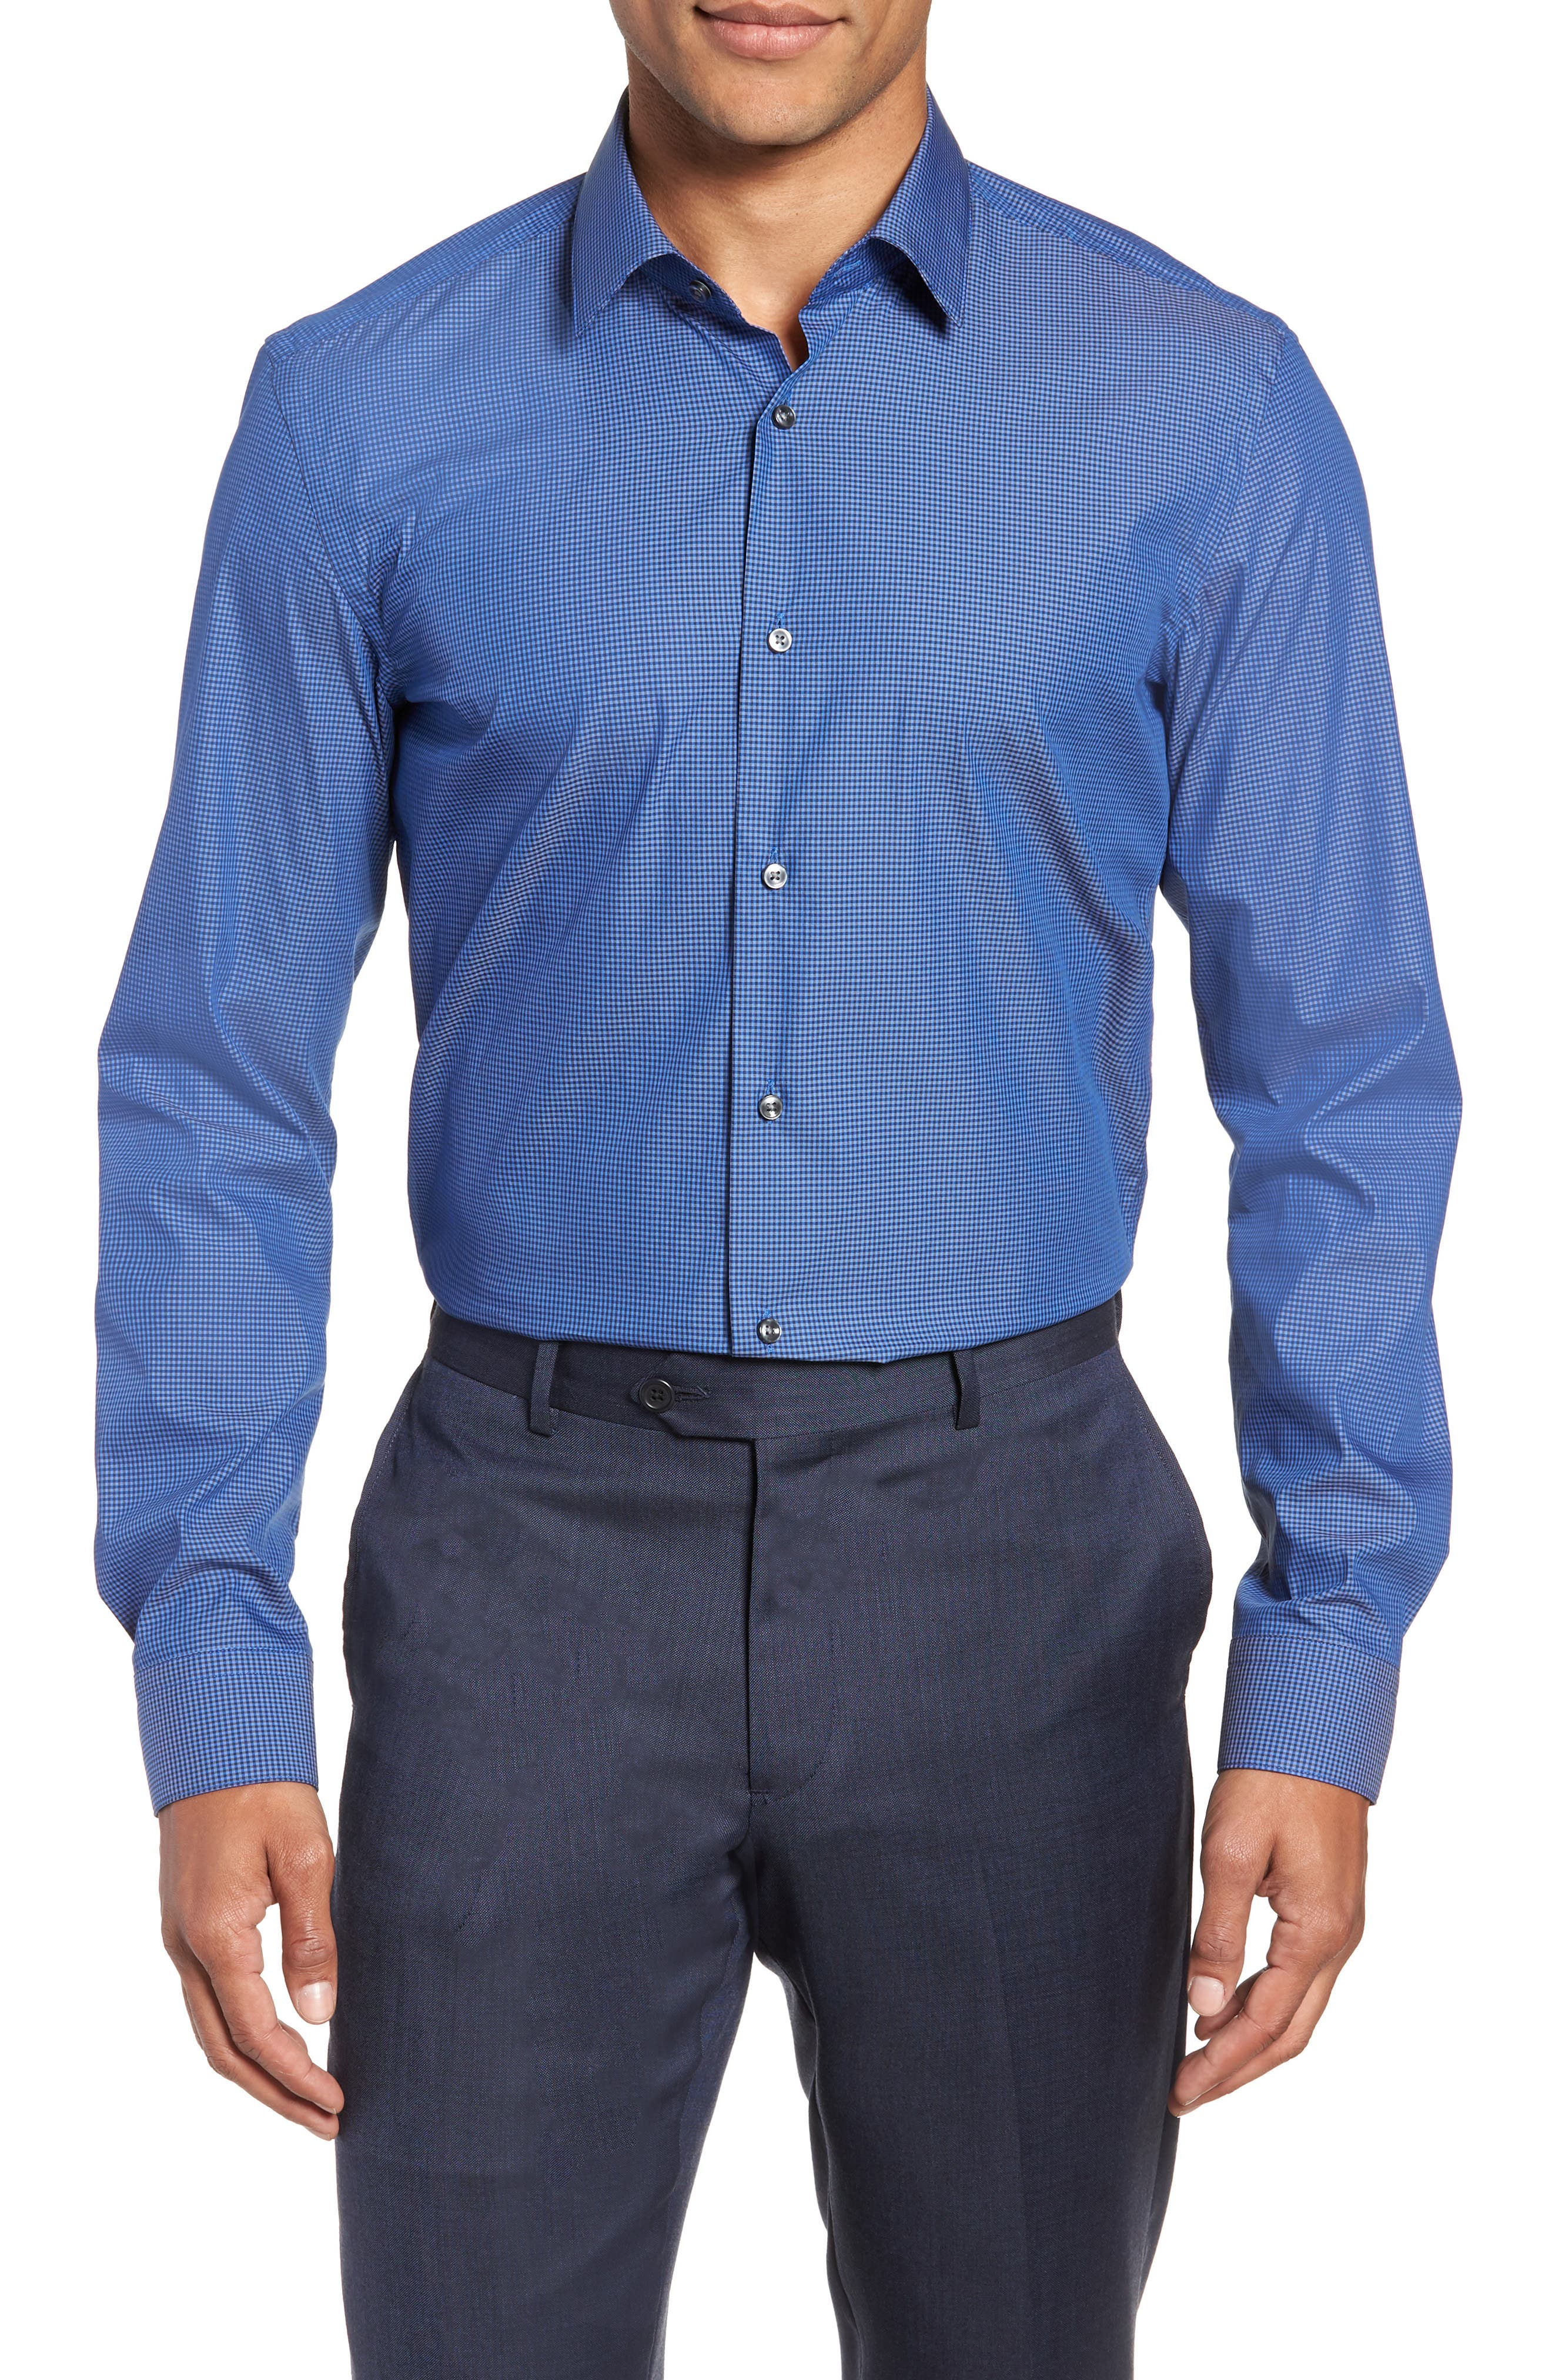 Isko Slim Fit Stretch Check Dress Shirt,                         Main,                         color, BLUE